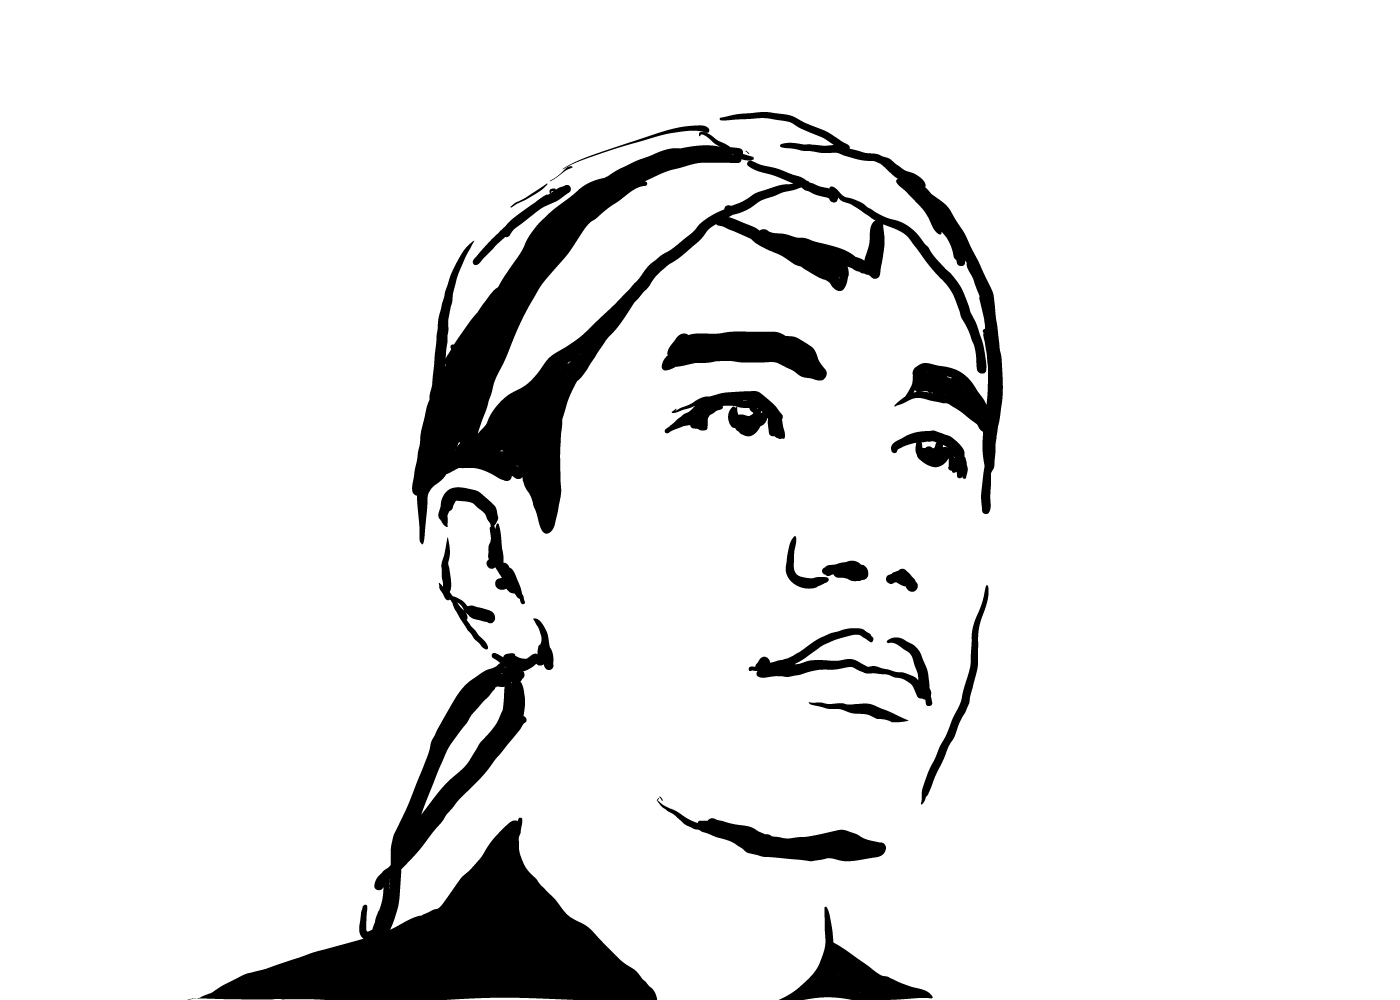 Make Your Portrait in my Line Art Style